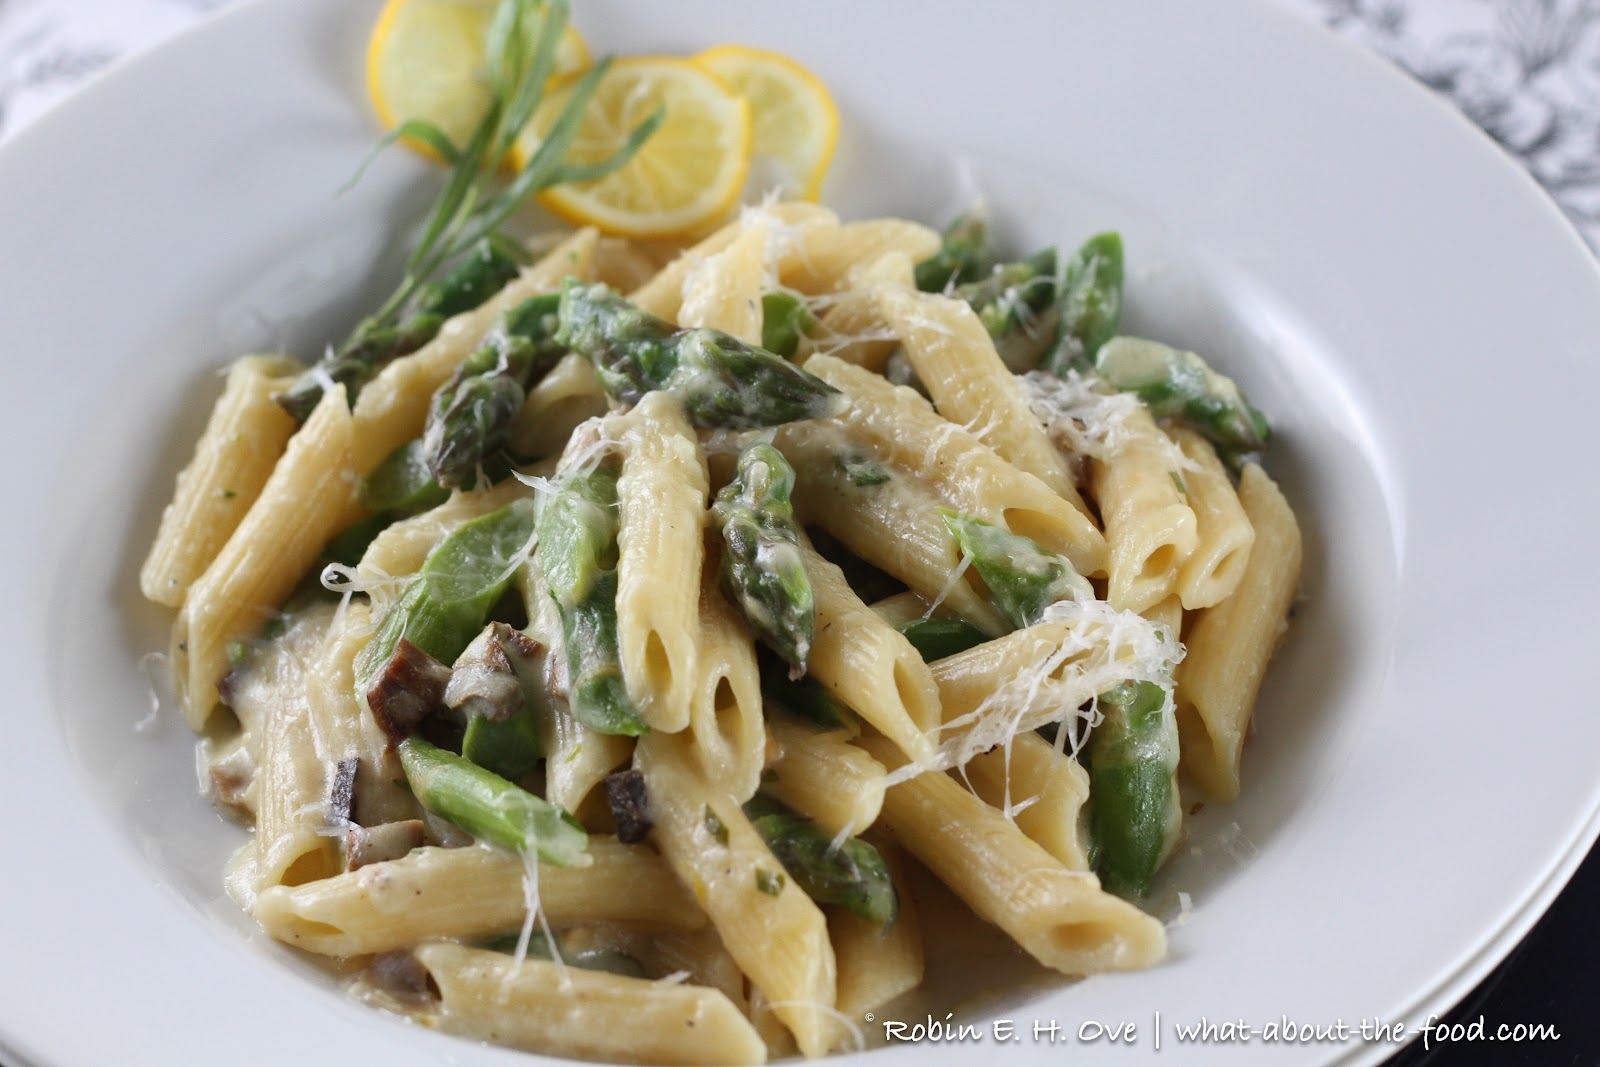 Lemon Truffle Pasta with Asparagus and Porcini Mushrooms